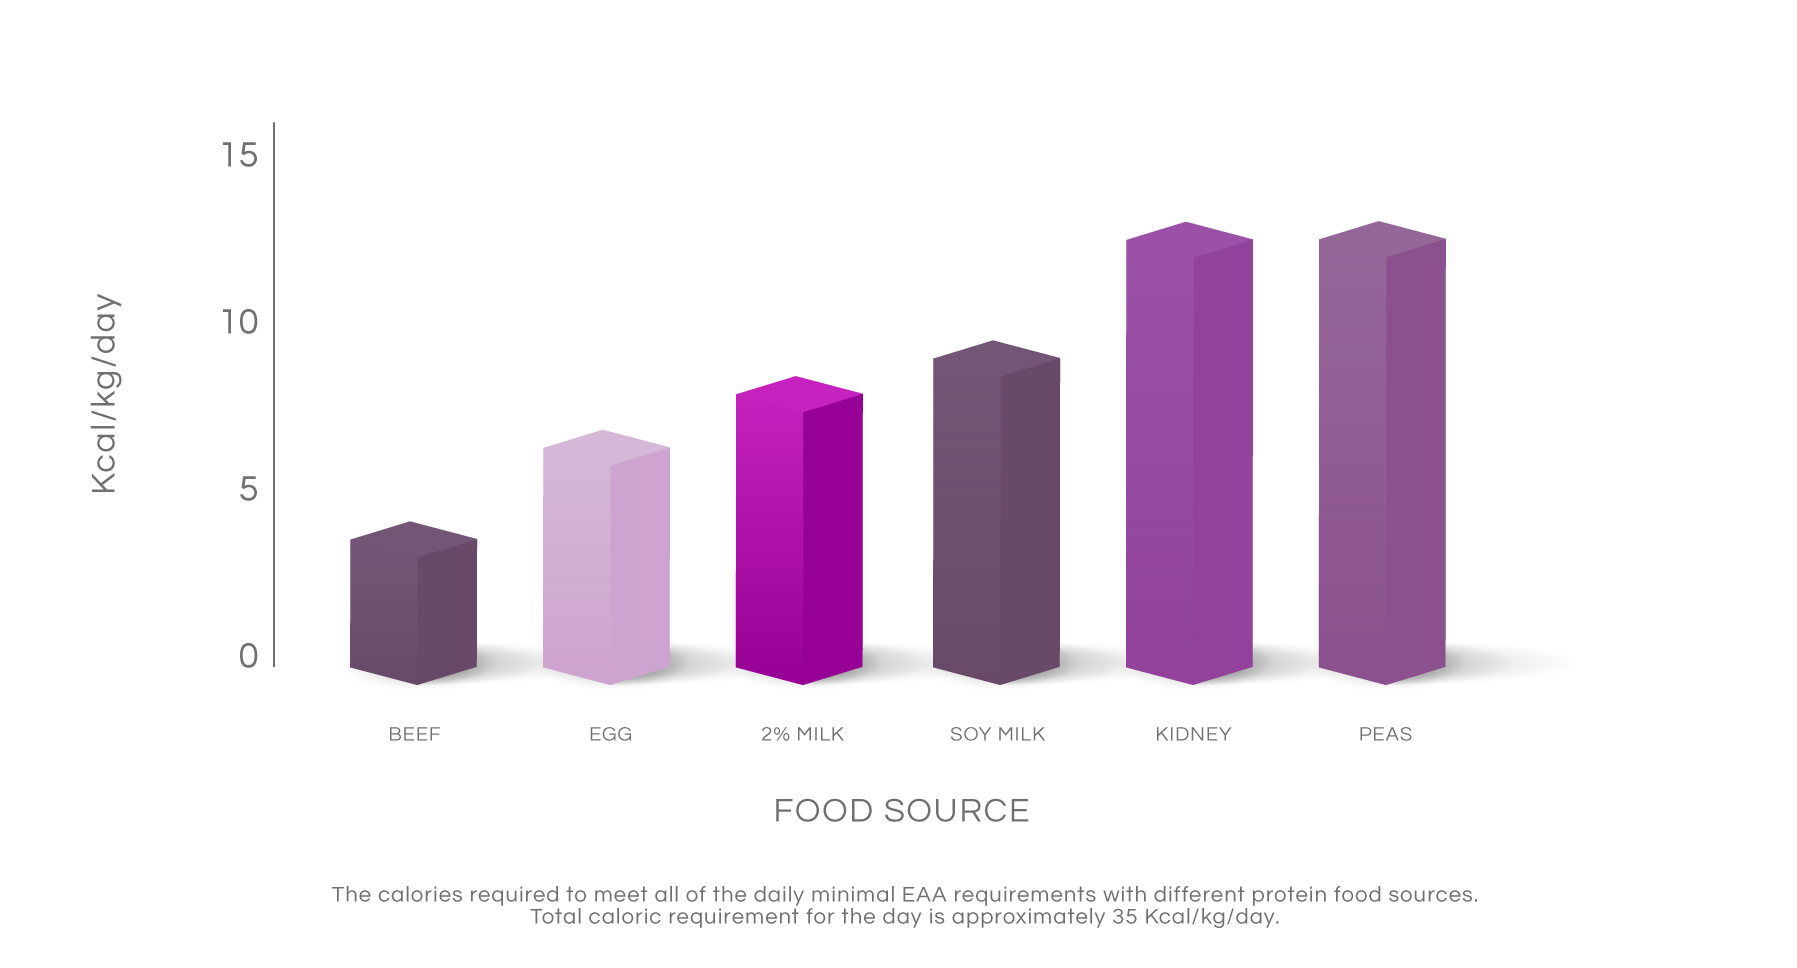 Bar graph of Protein density from a protein food source